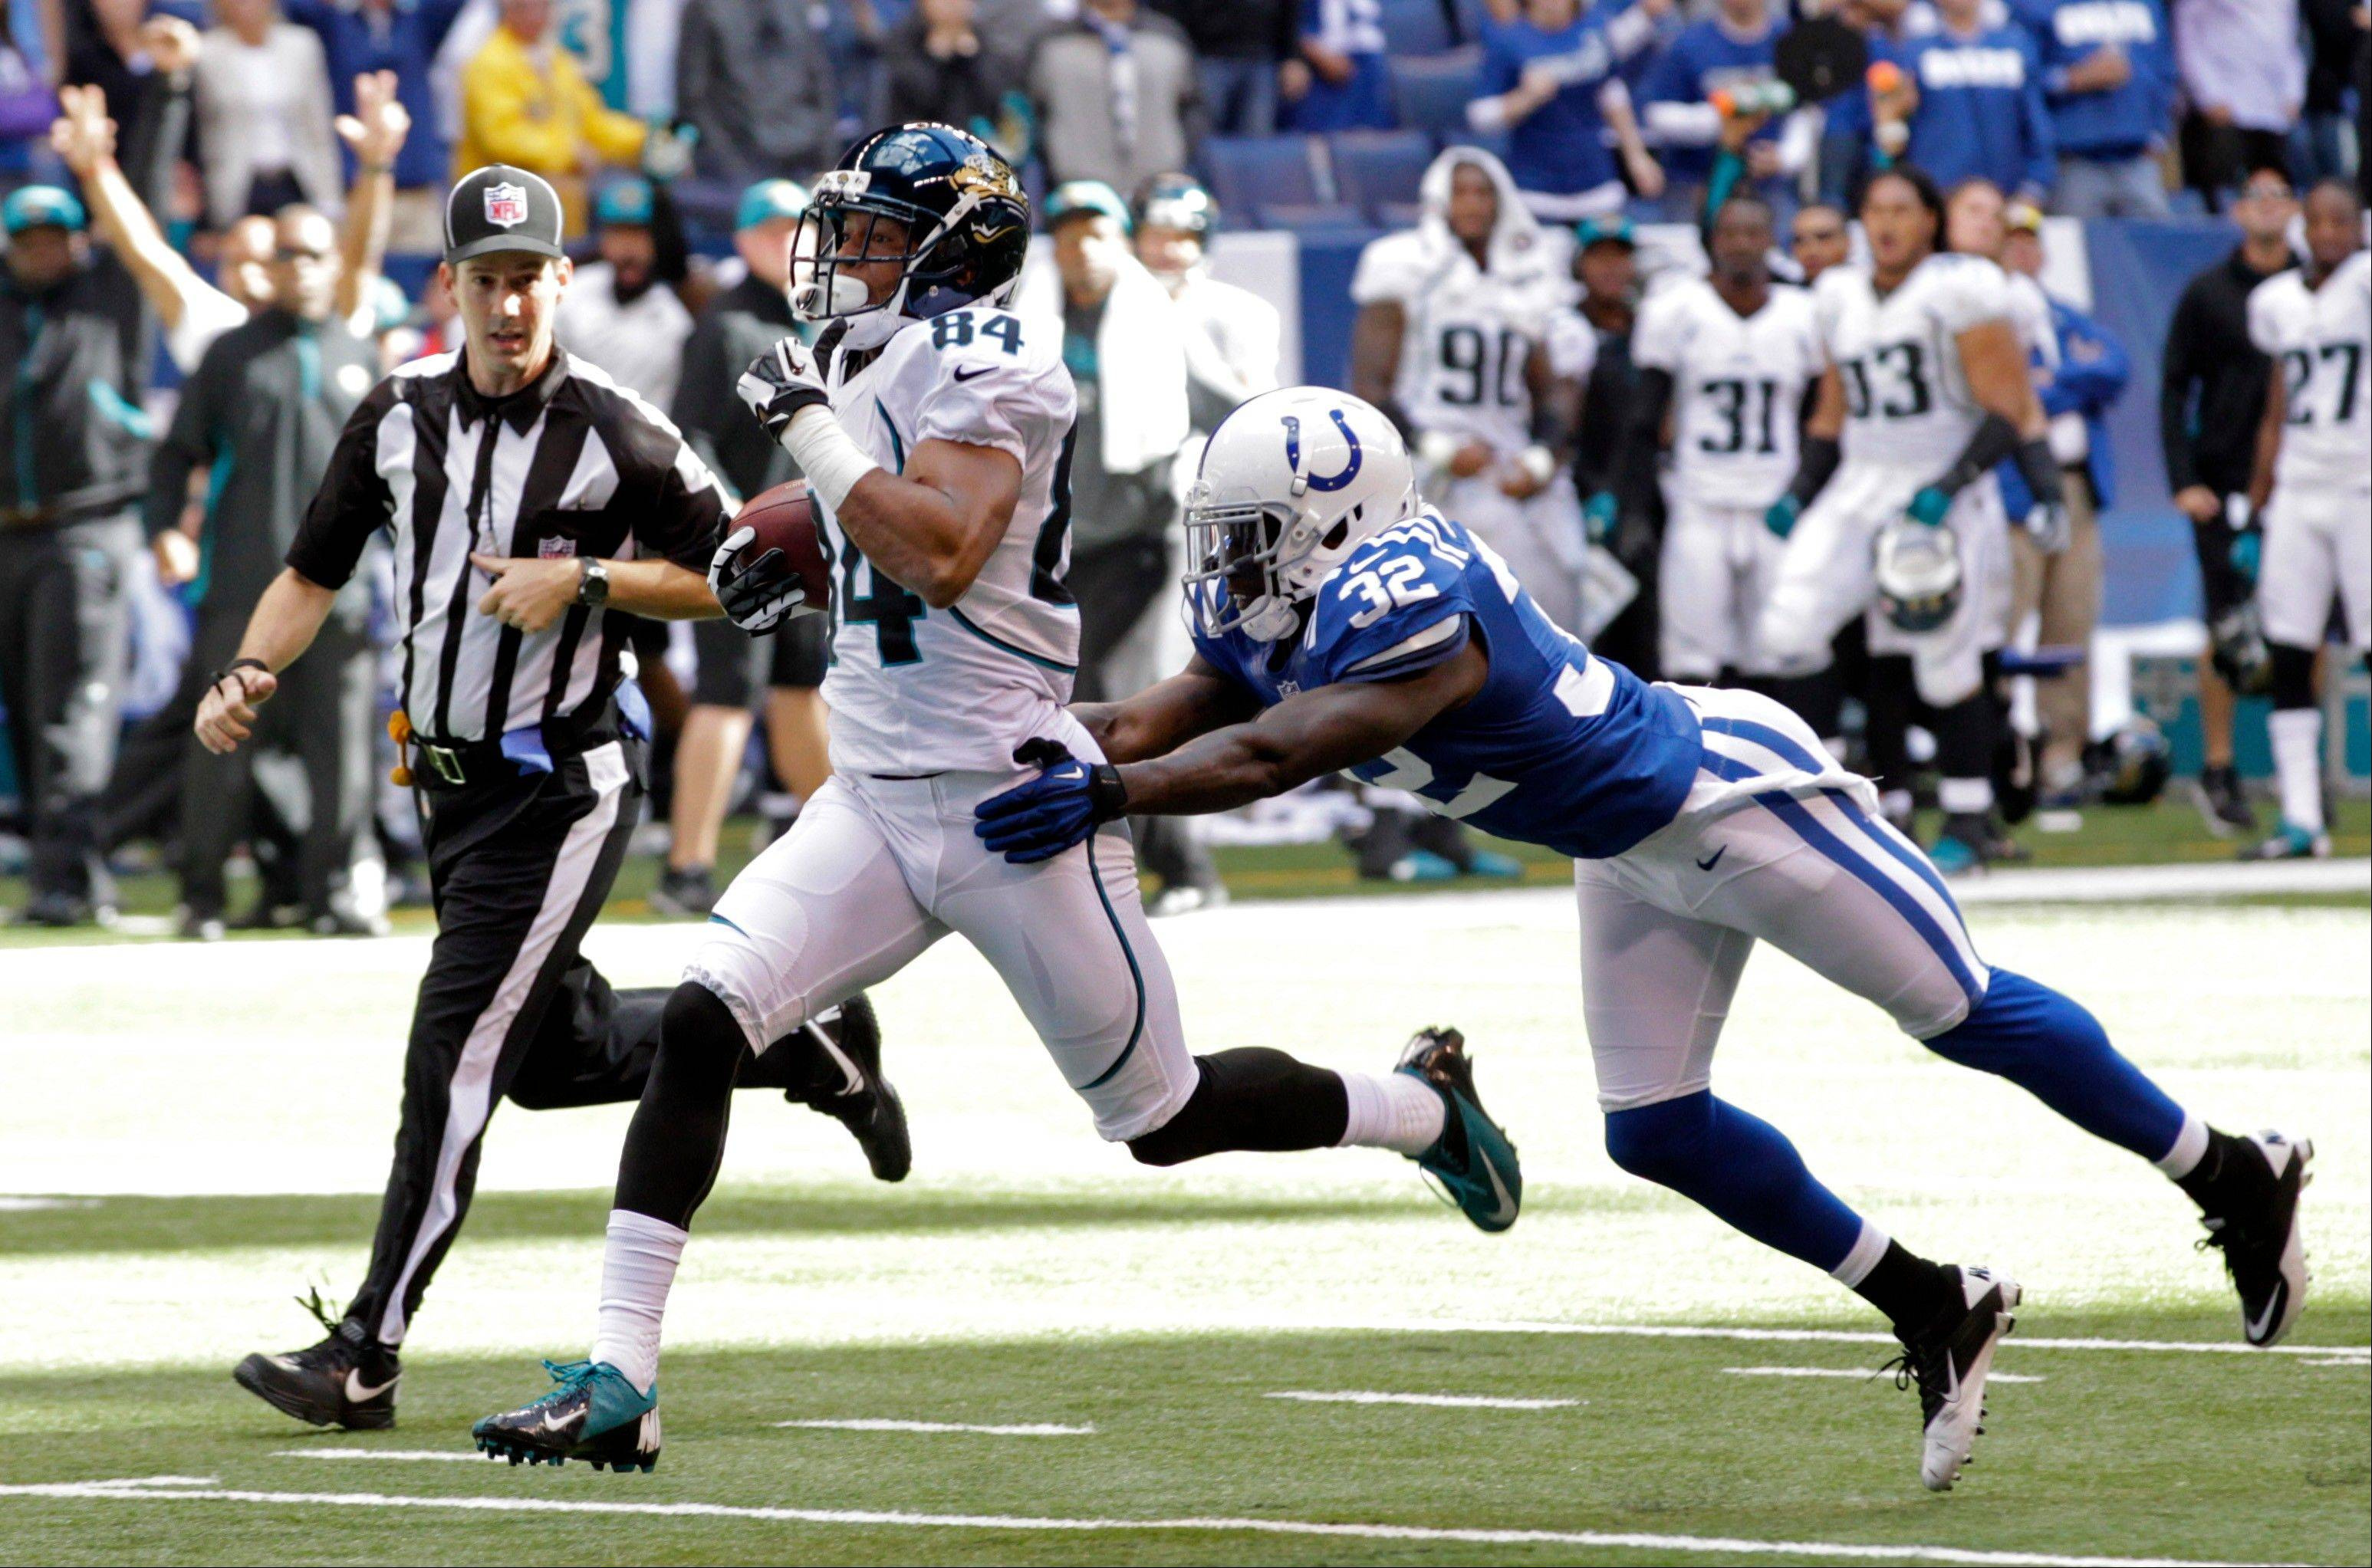 Jacksonville Jaguars wide receiver Cecil Shorts breaks the tackle of Indianapolis Colts defensive back Cassius Vaughn on his way to 80-yard touchdown in the final minute of Sunday�s game in Indianapolis.